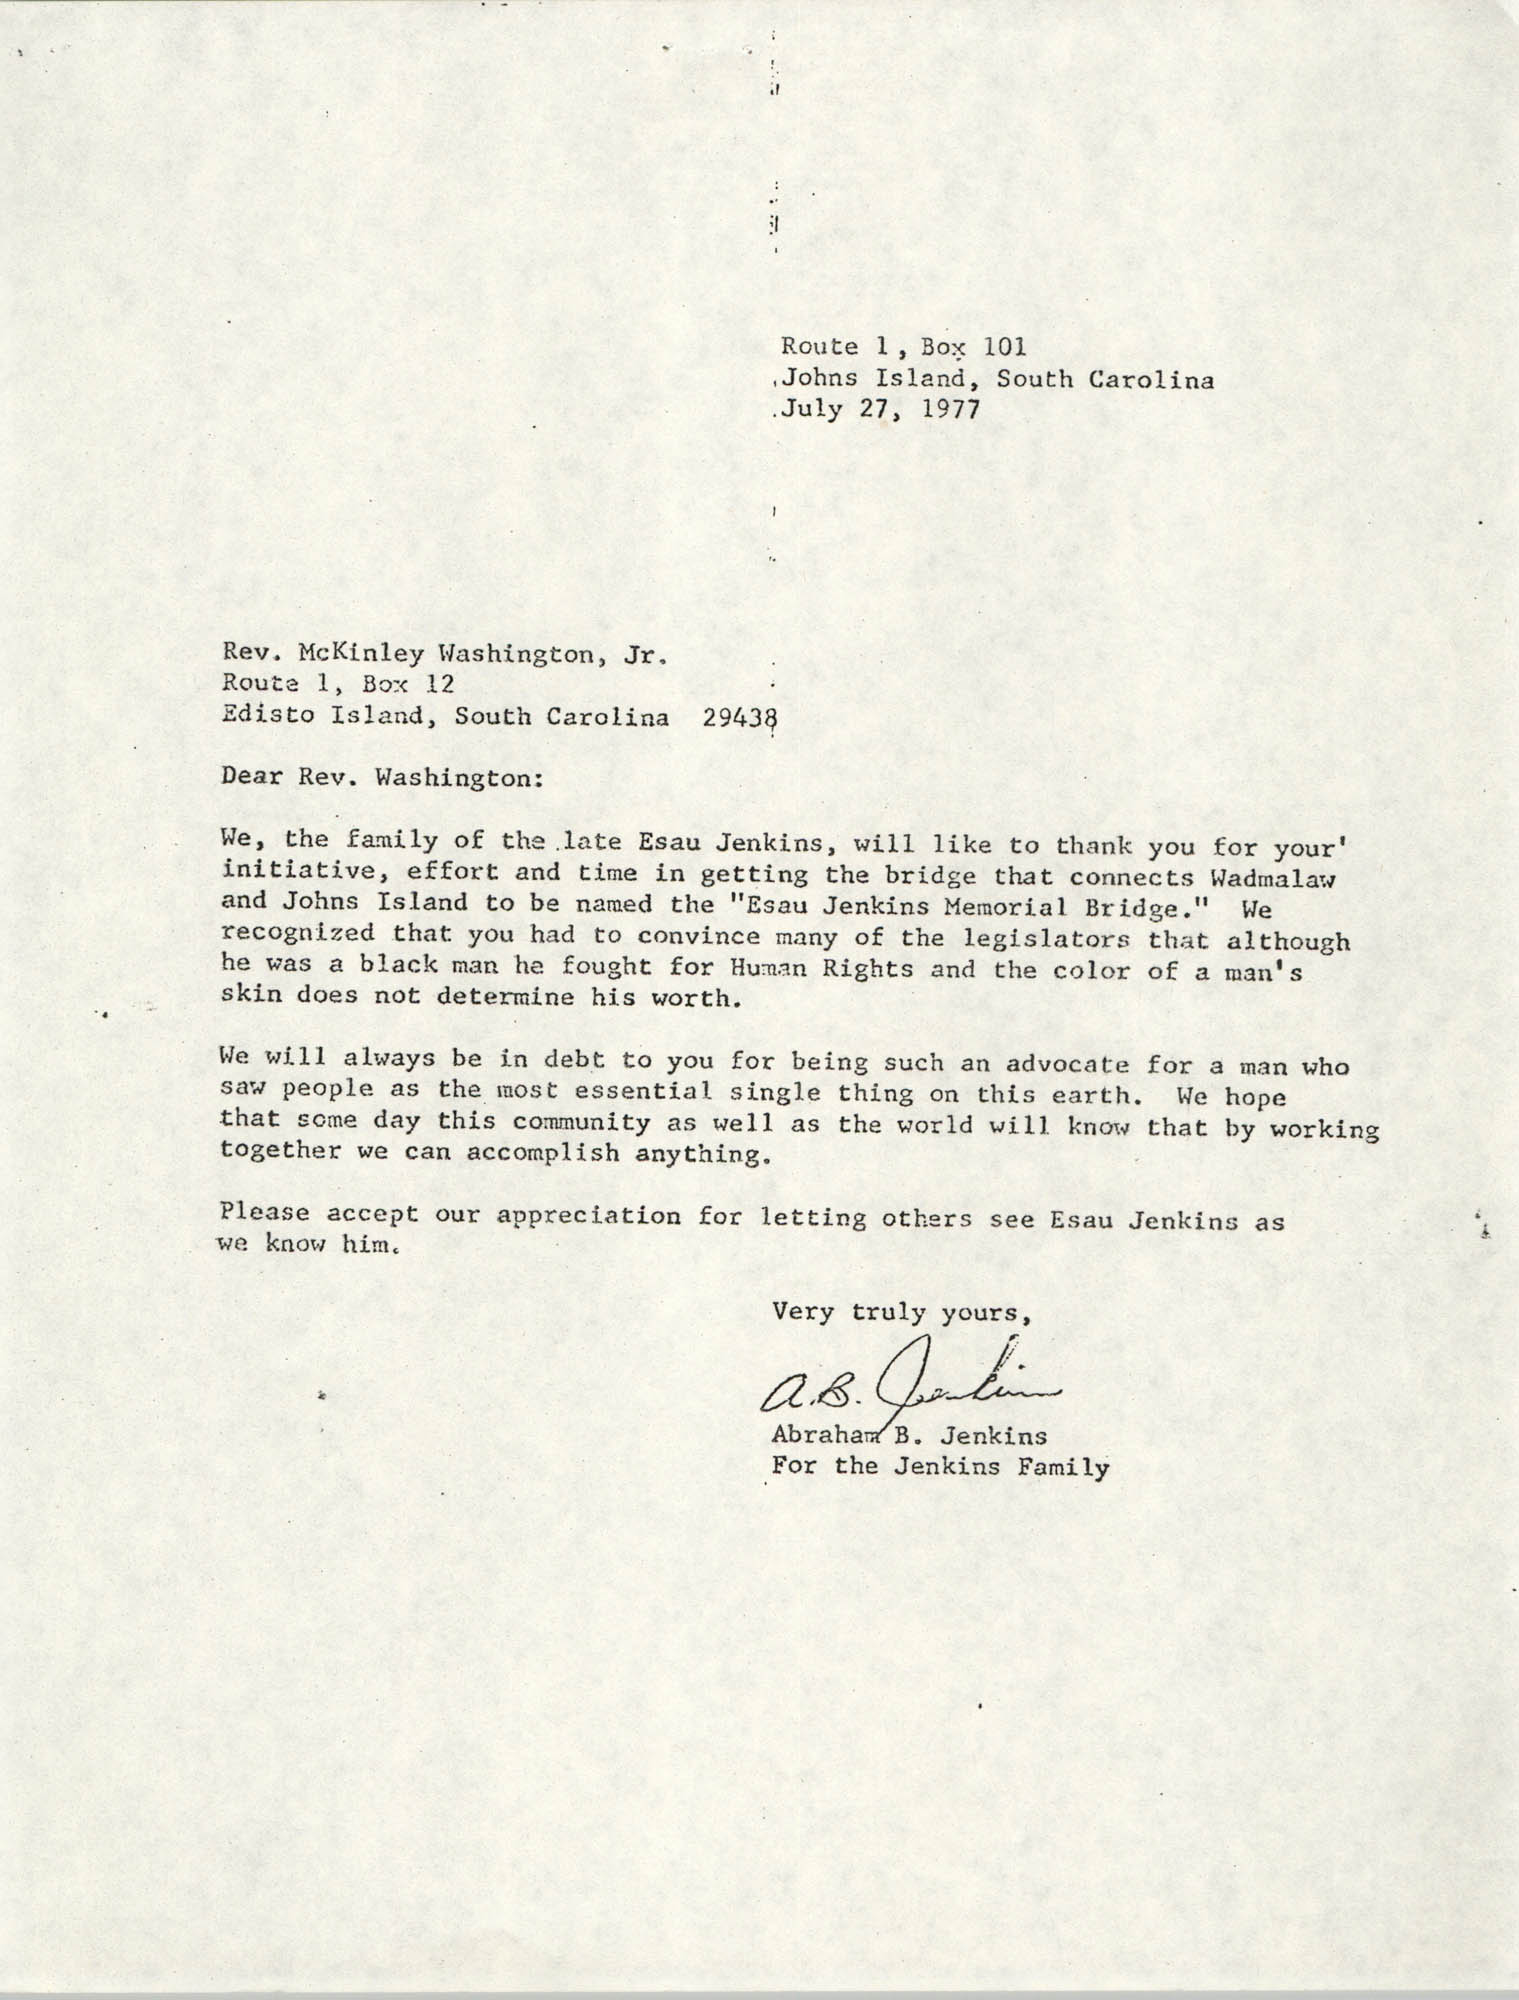 Letter from McKinley Washington, Jr. to Abraham B. Jenkins, July 27, 1977